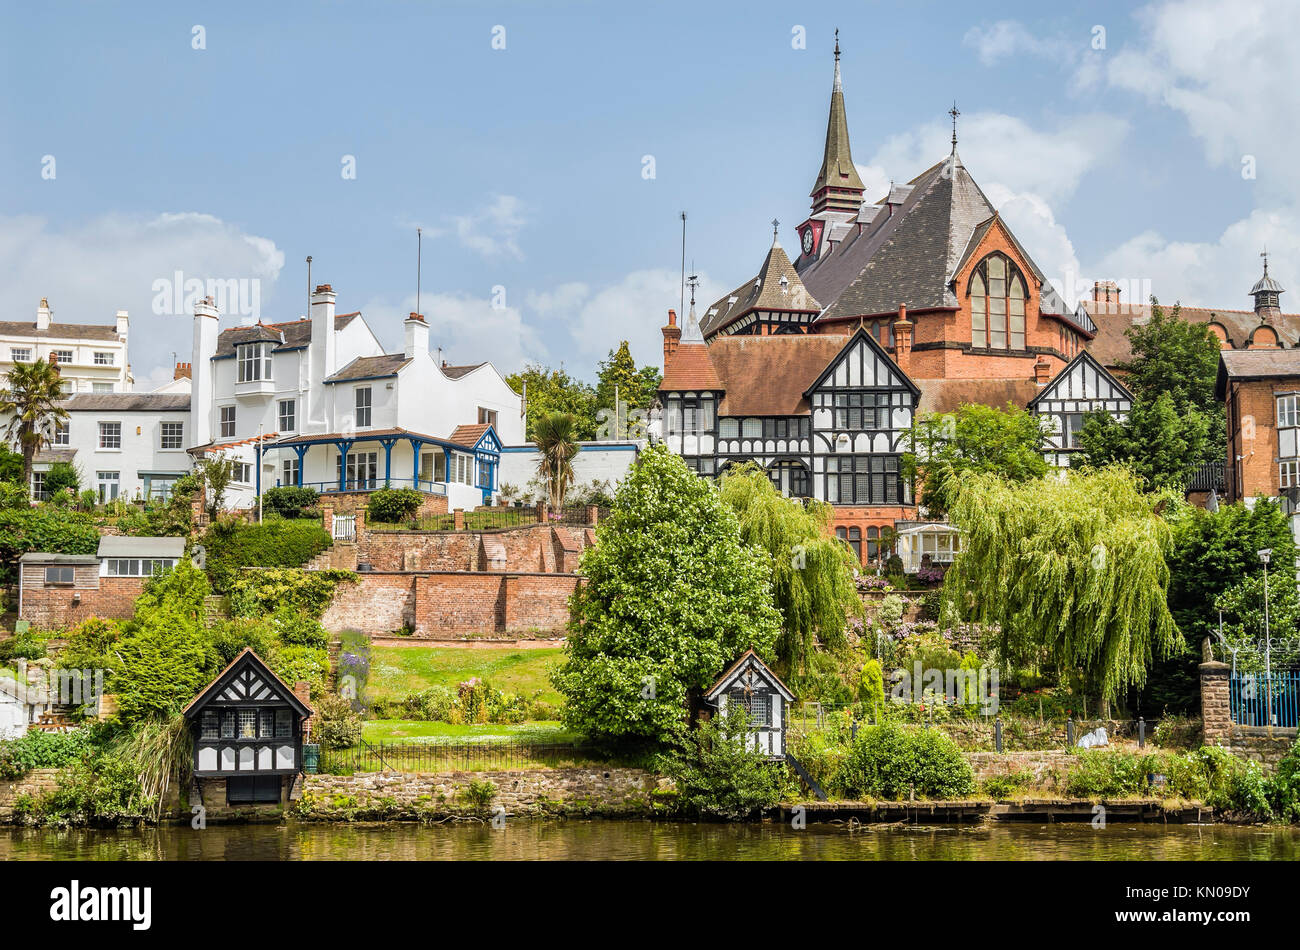 Historical riverside mansions along the River Dee in Chester, Chesire, England Stock Photo